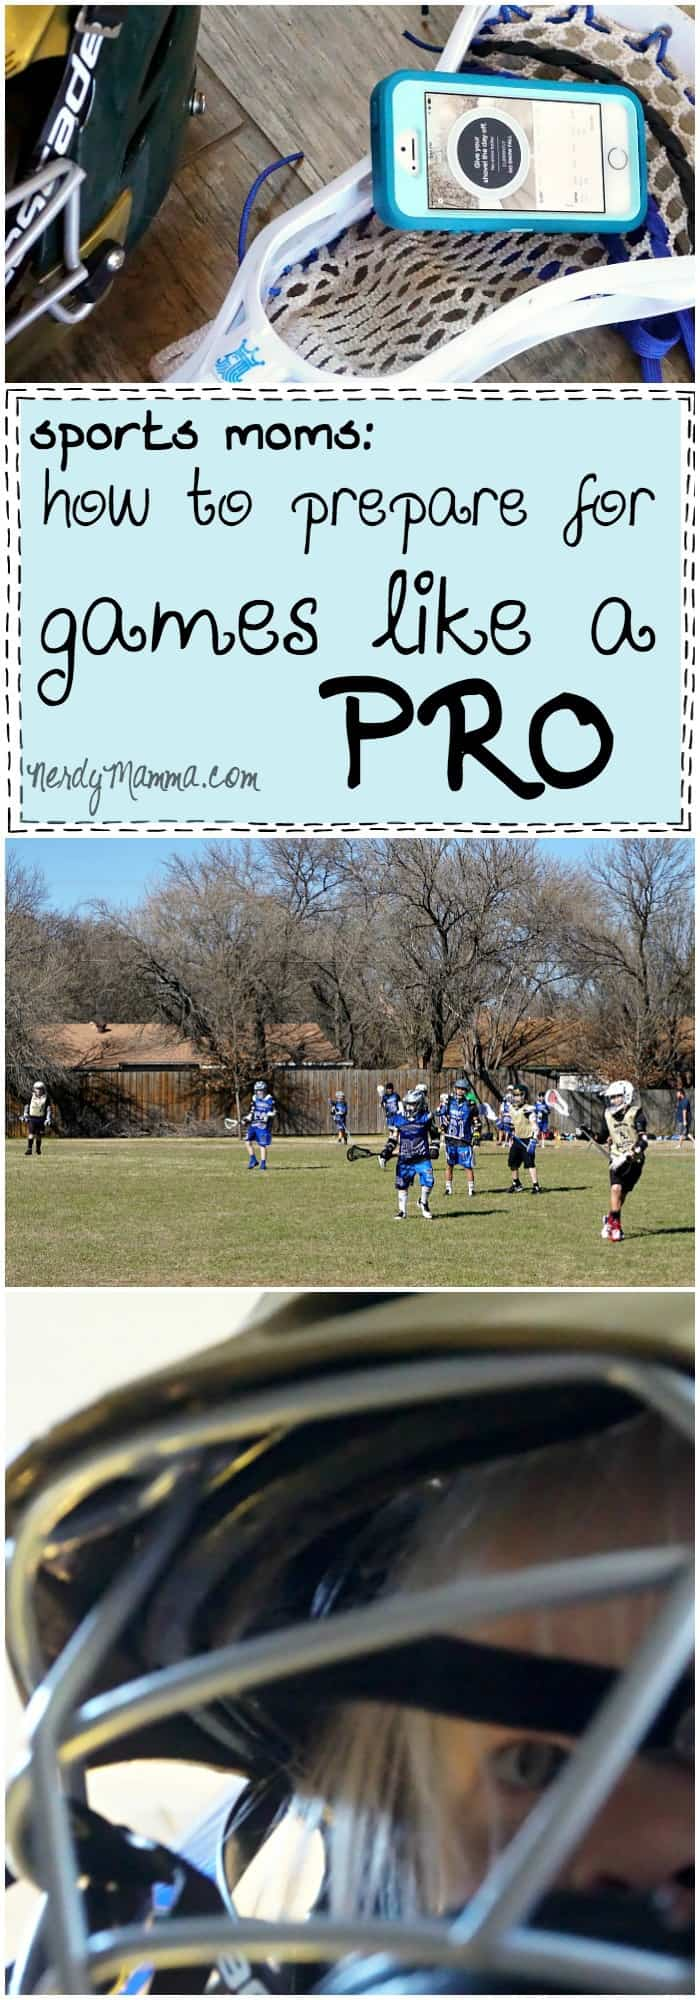 I love this list of things to help make your sports games feel more comfortable! How to Prepare For Games Like a Pro...LOL!